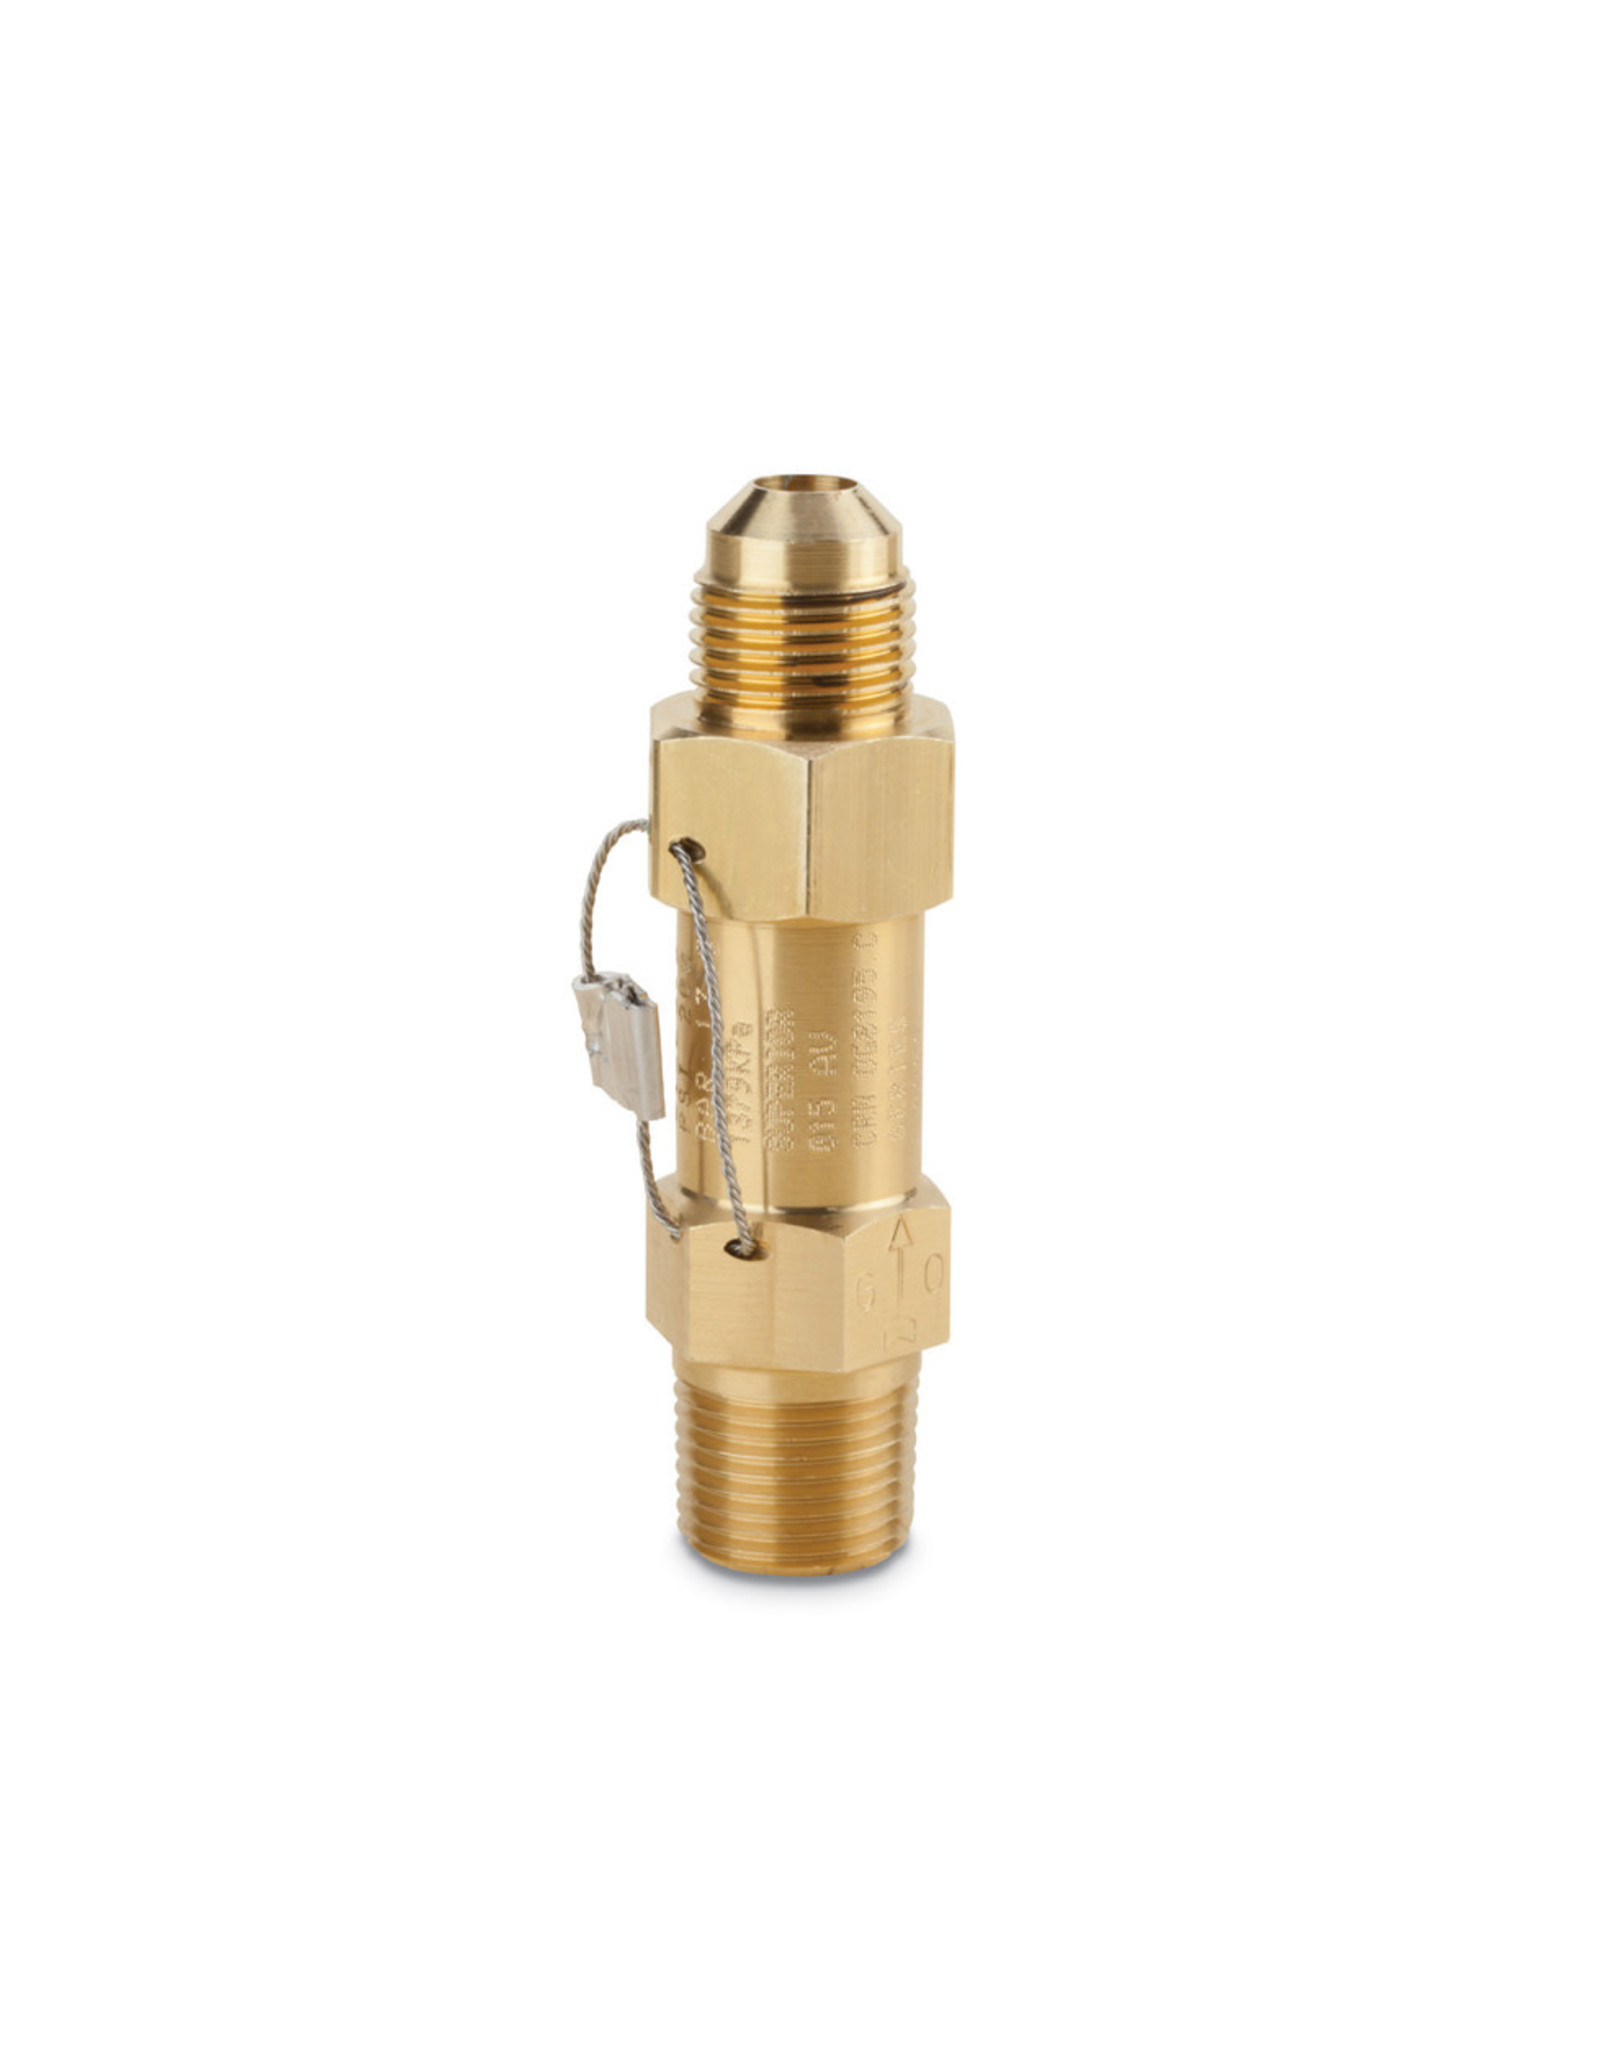 Superior HVACR Straight-Thru Pressure Relief Valves - Types 3012, 3014, 3015, 3016, 3020